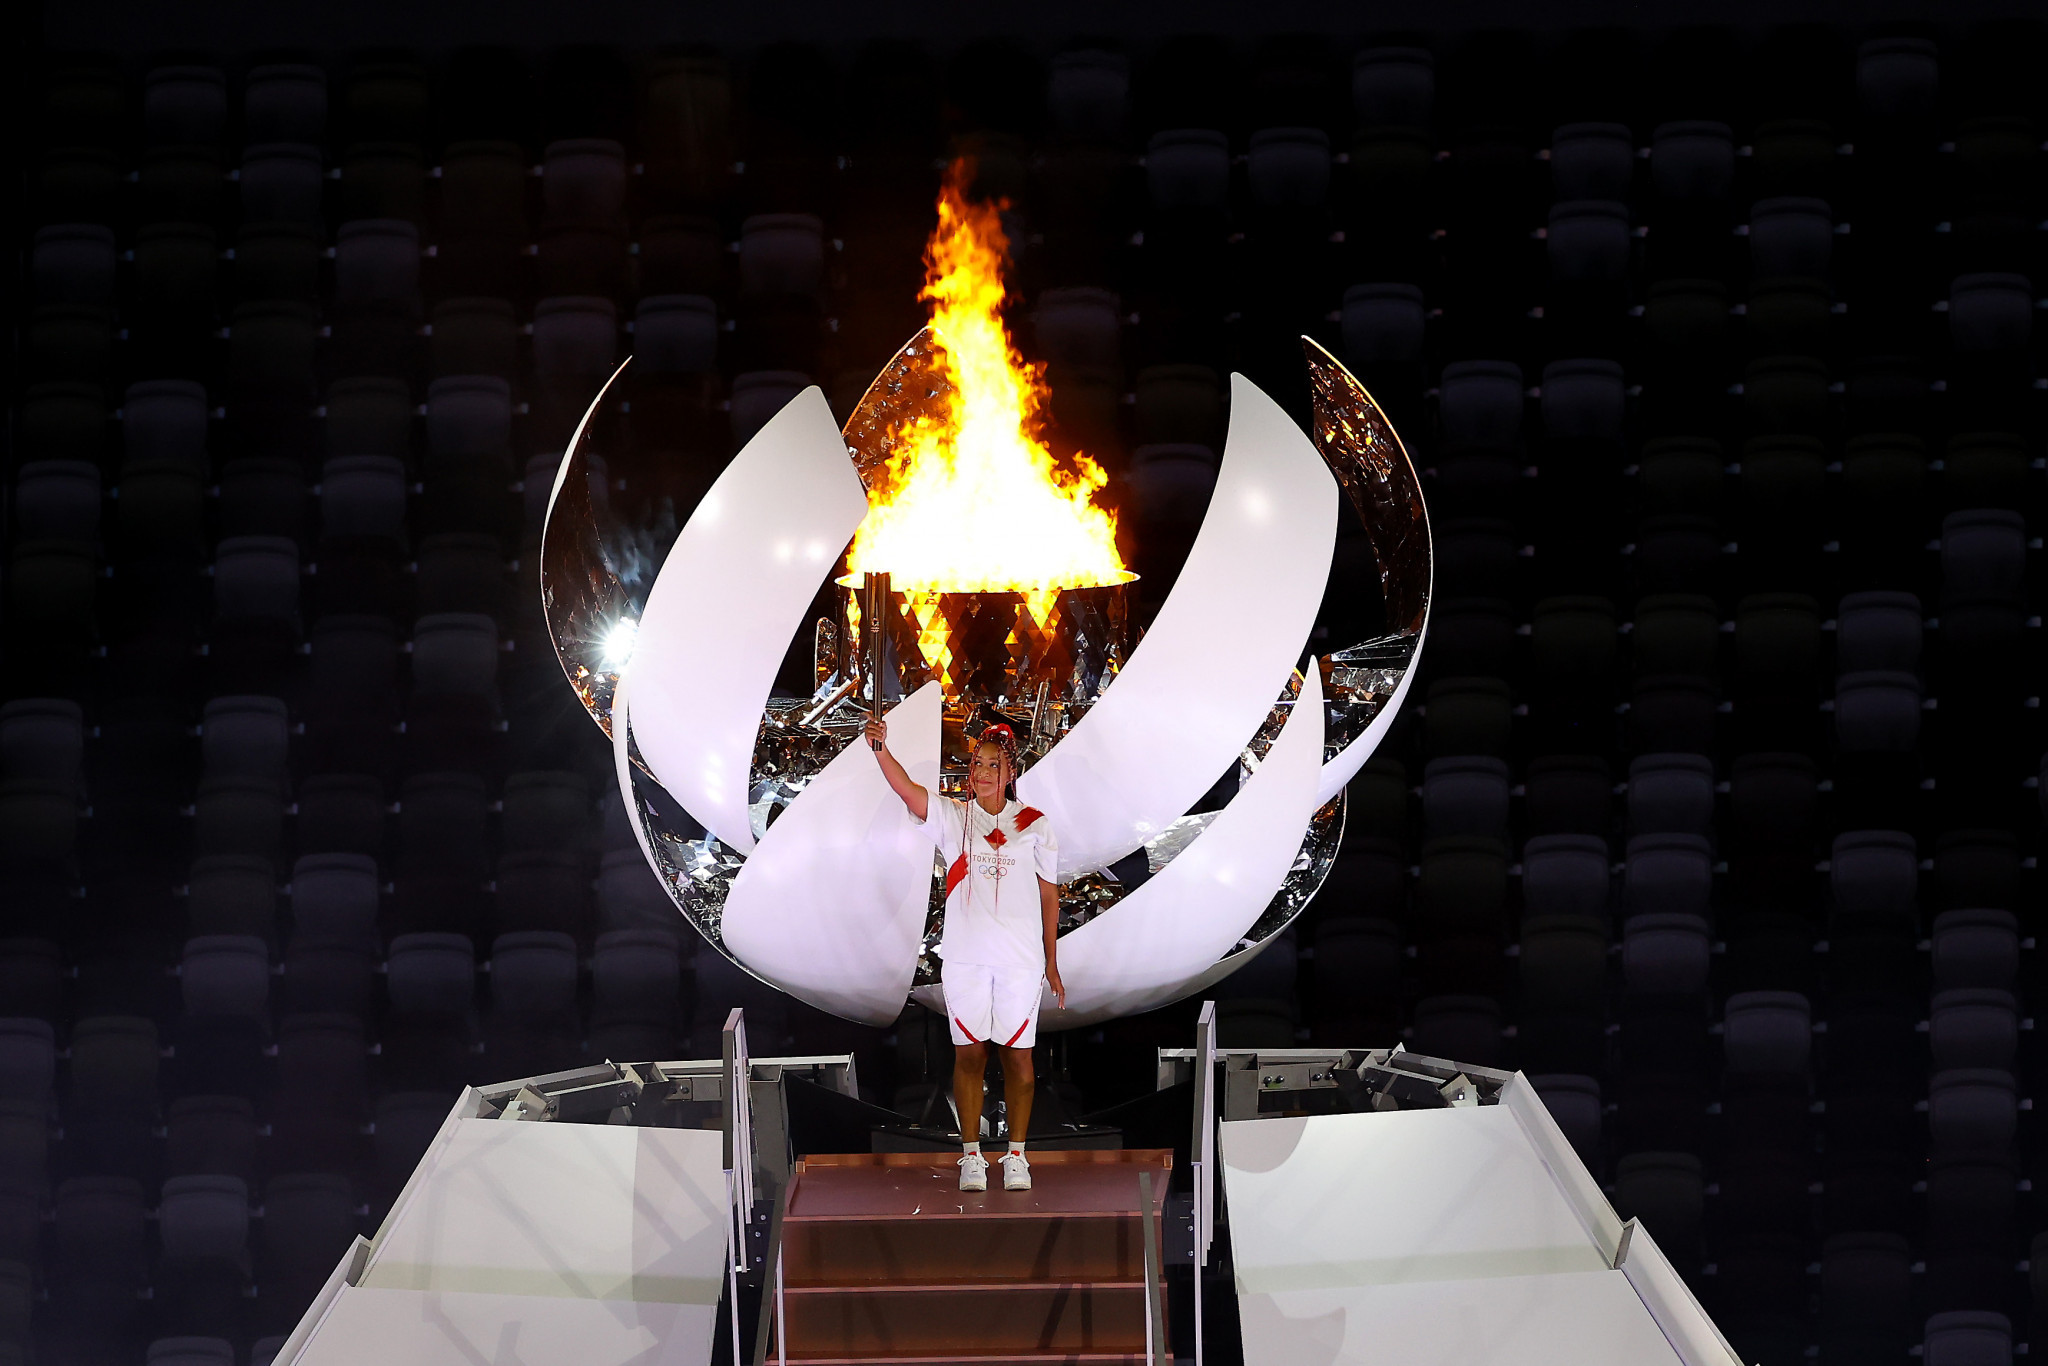 Japanese tennis star Naomi Osaka had the honour of lighting the Olympic Flame during the Tokyo 2020 Opening Ceremony ©Getty Images